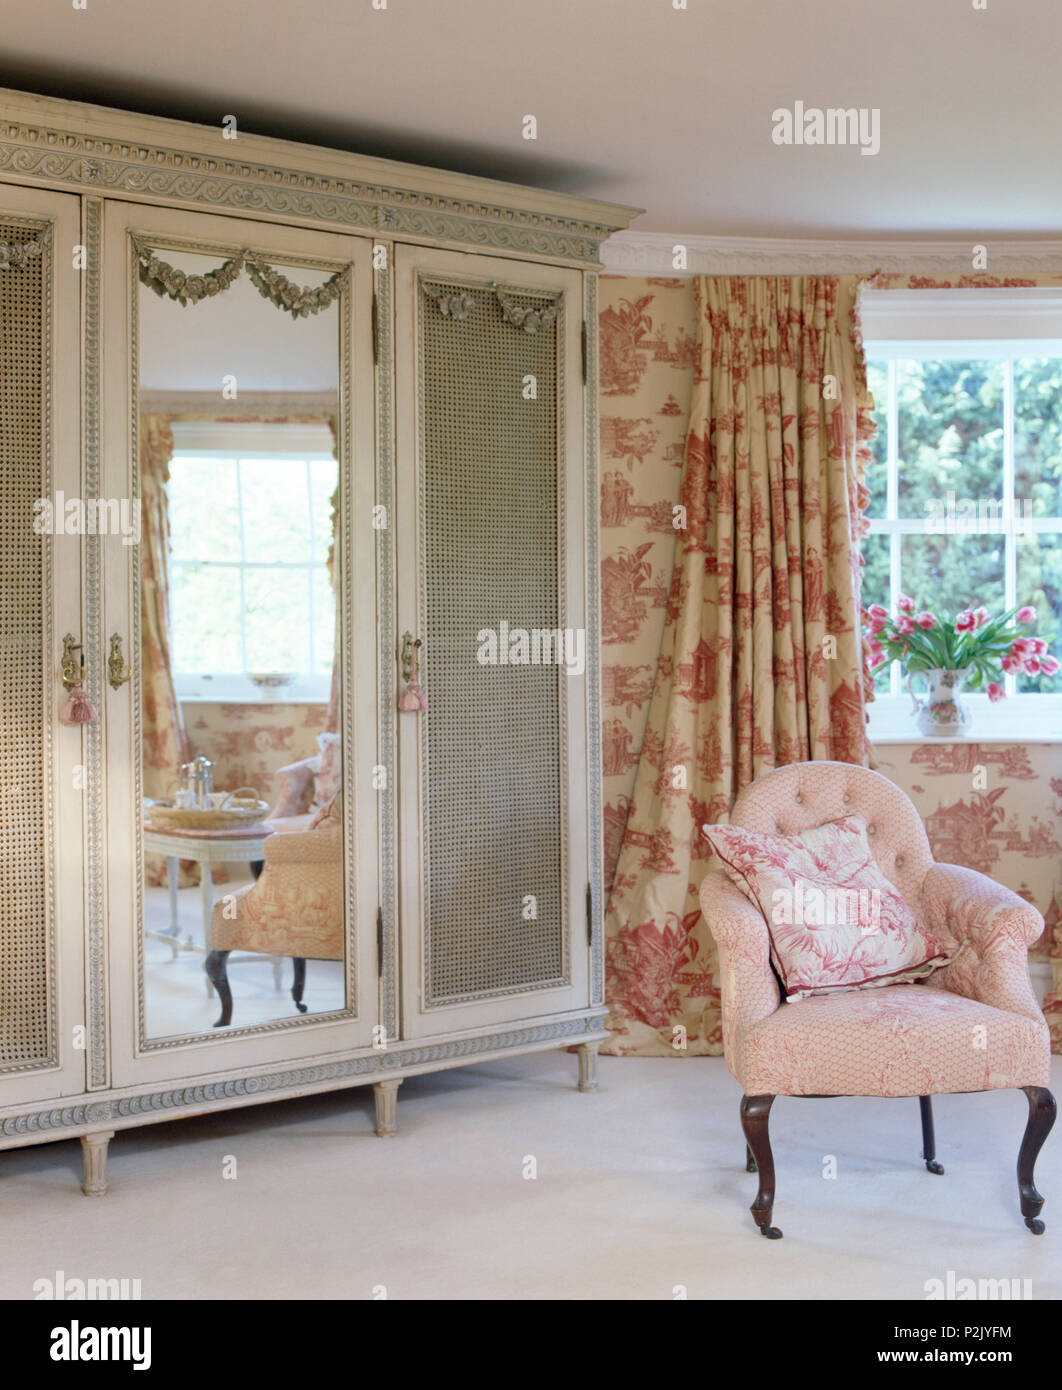 Painted French Style Wardrobe With Mirrored Door In Bedroom With Pink Toile  De Jouy Curtains And Pink Upholstered Chair